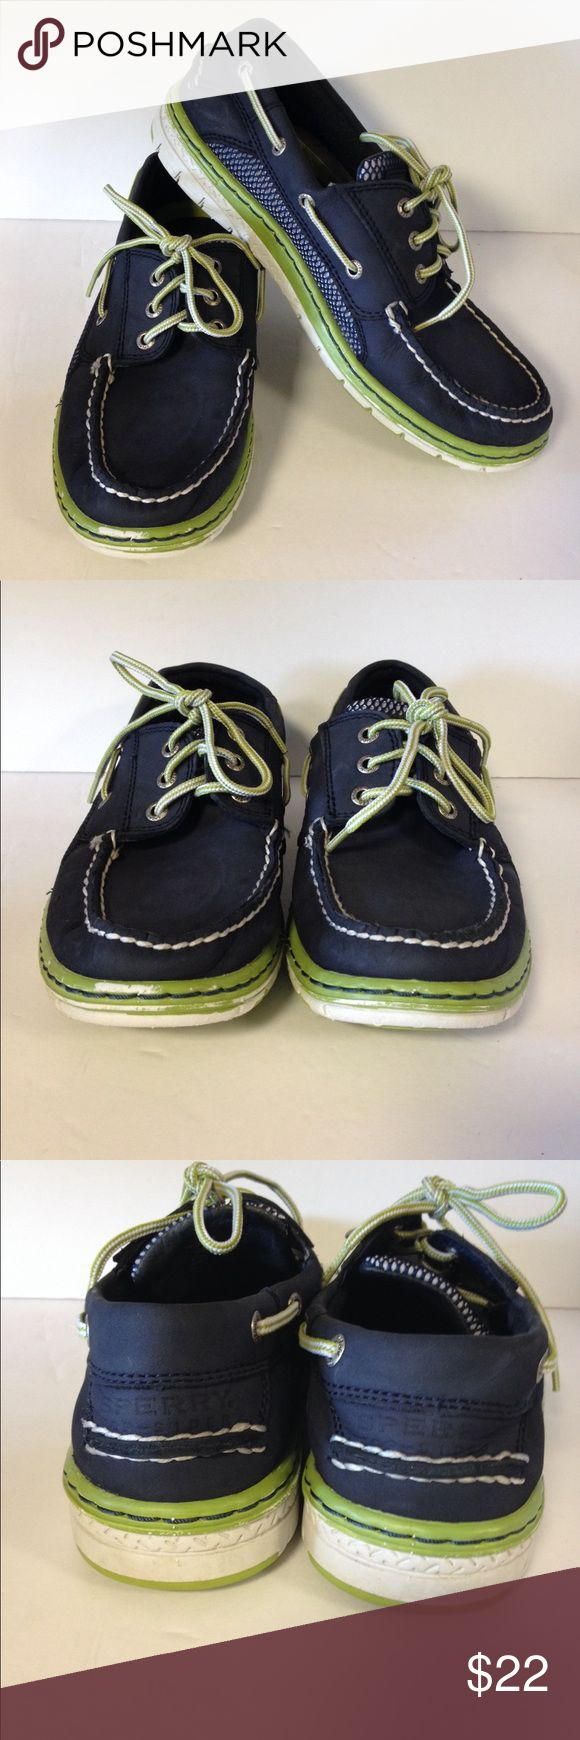 Sperry Top Sider shoes blue green Good preloved condition.  Clean.  Pet and smoke free.  Size 8. Please look at pictures.  Price reflects the toe of shoes has some color missing. Sperry Top-Sider Shoes Boat Shoes